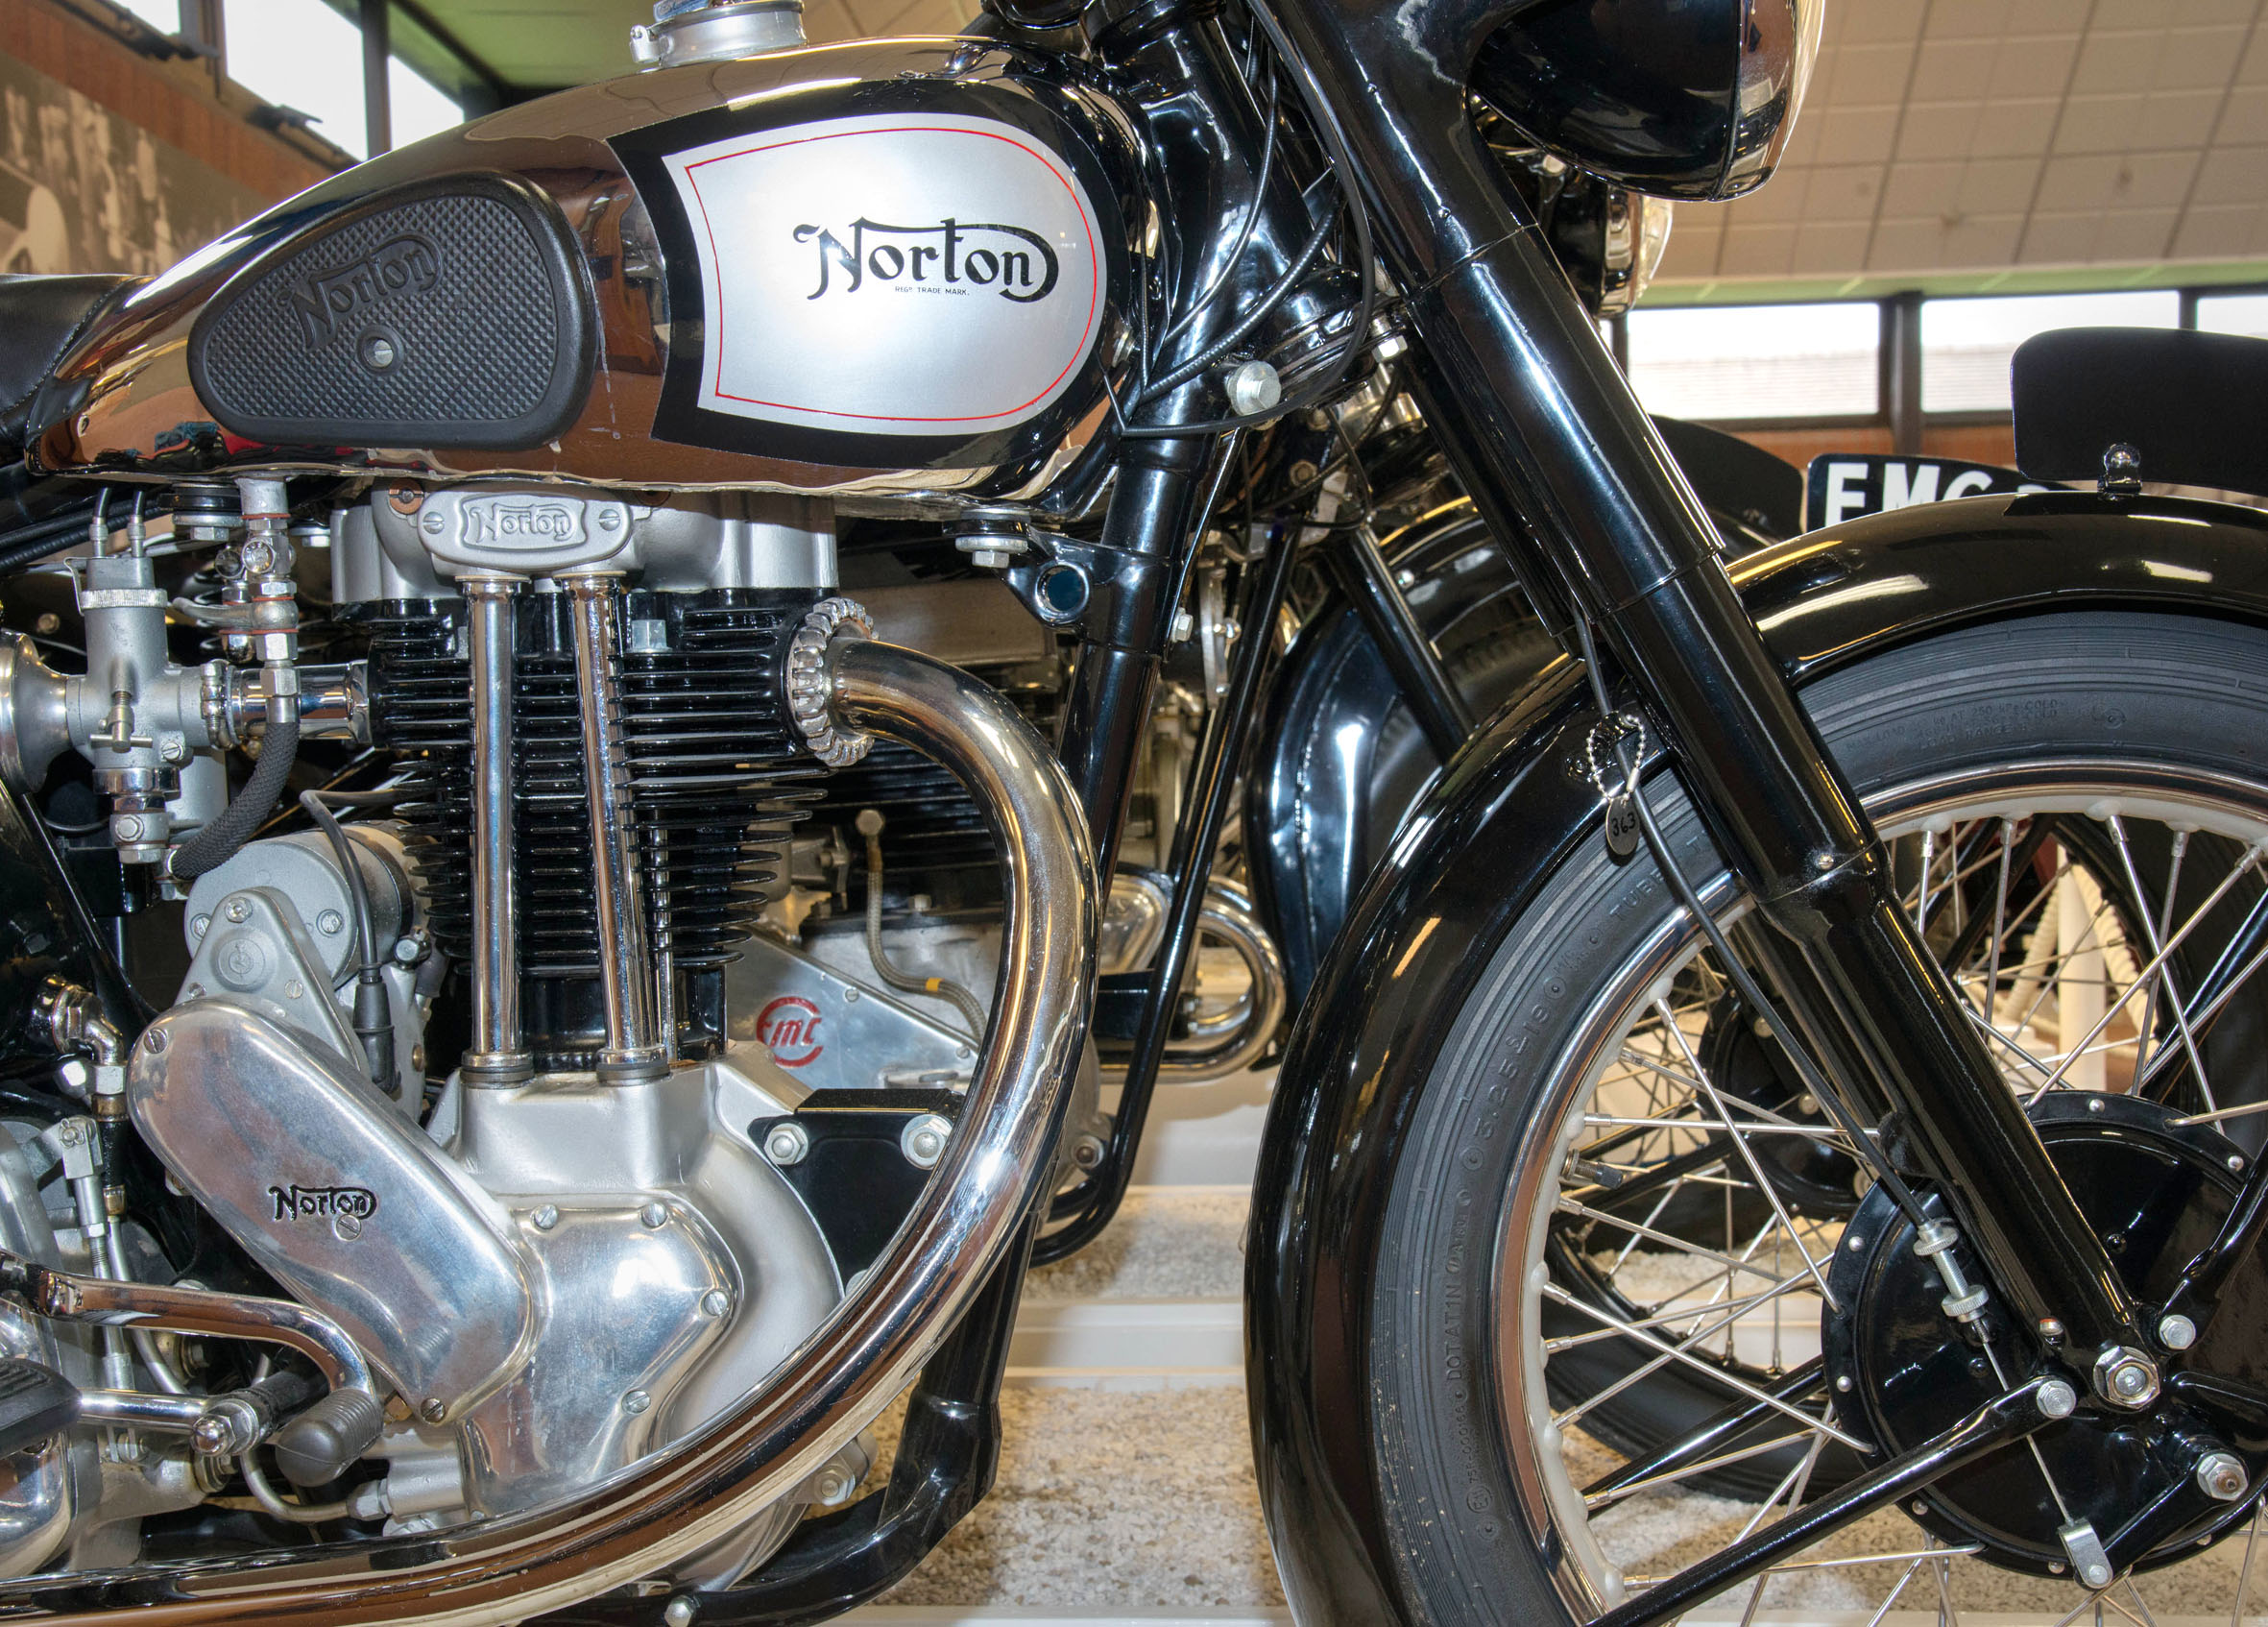 Caring for your classic motorcycle over winter